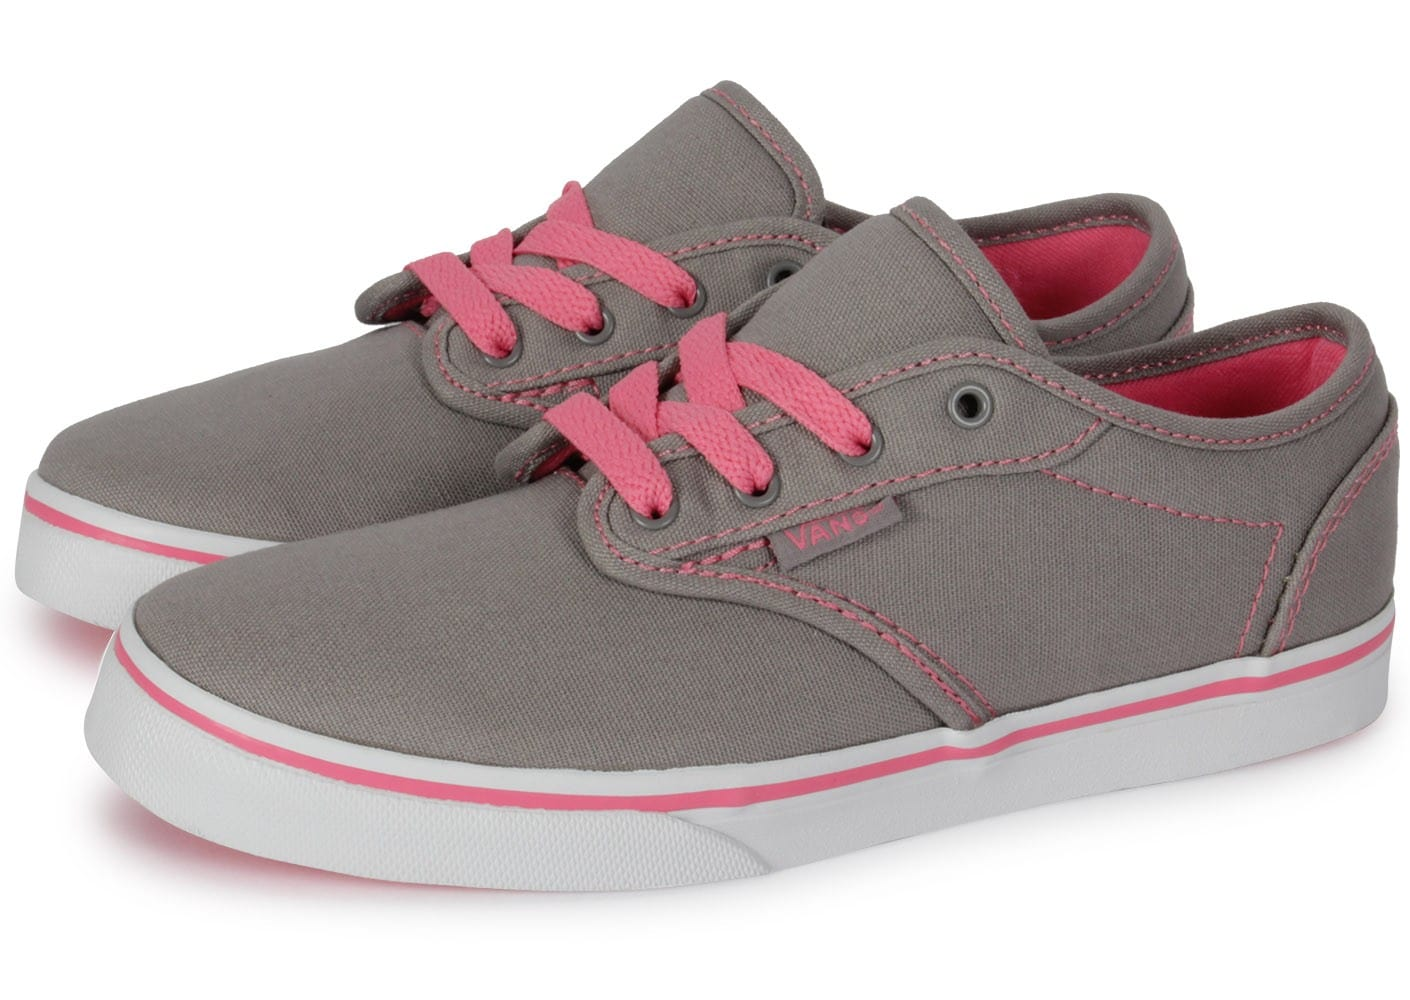 vans atwood enfant grise et rose chaussures chaussures chausport. Black Bedroom Furniture Sets. Home Design Ideas